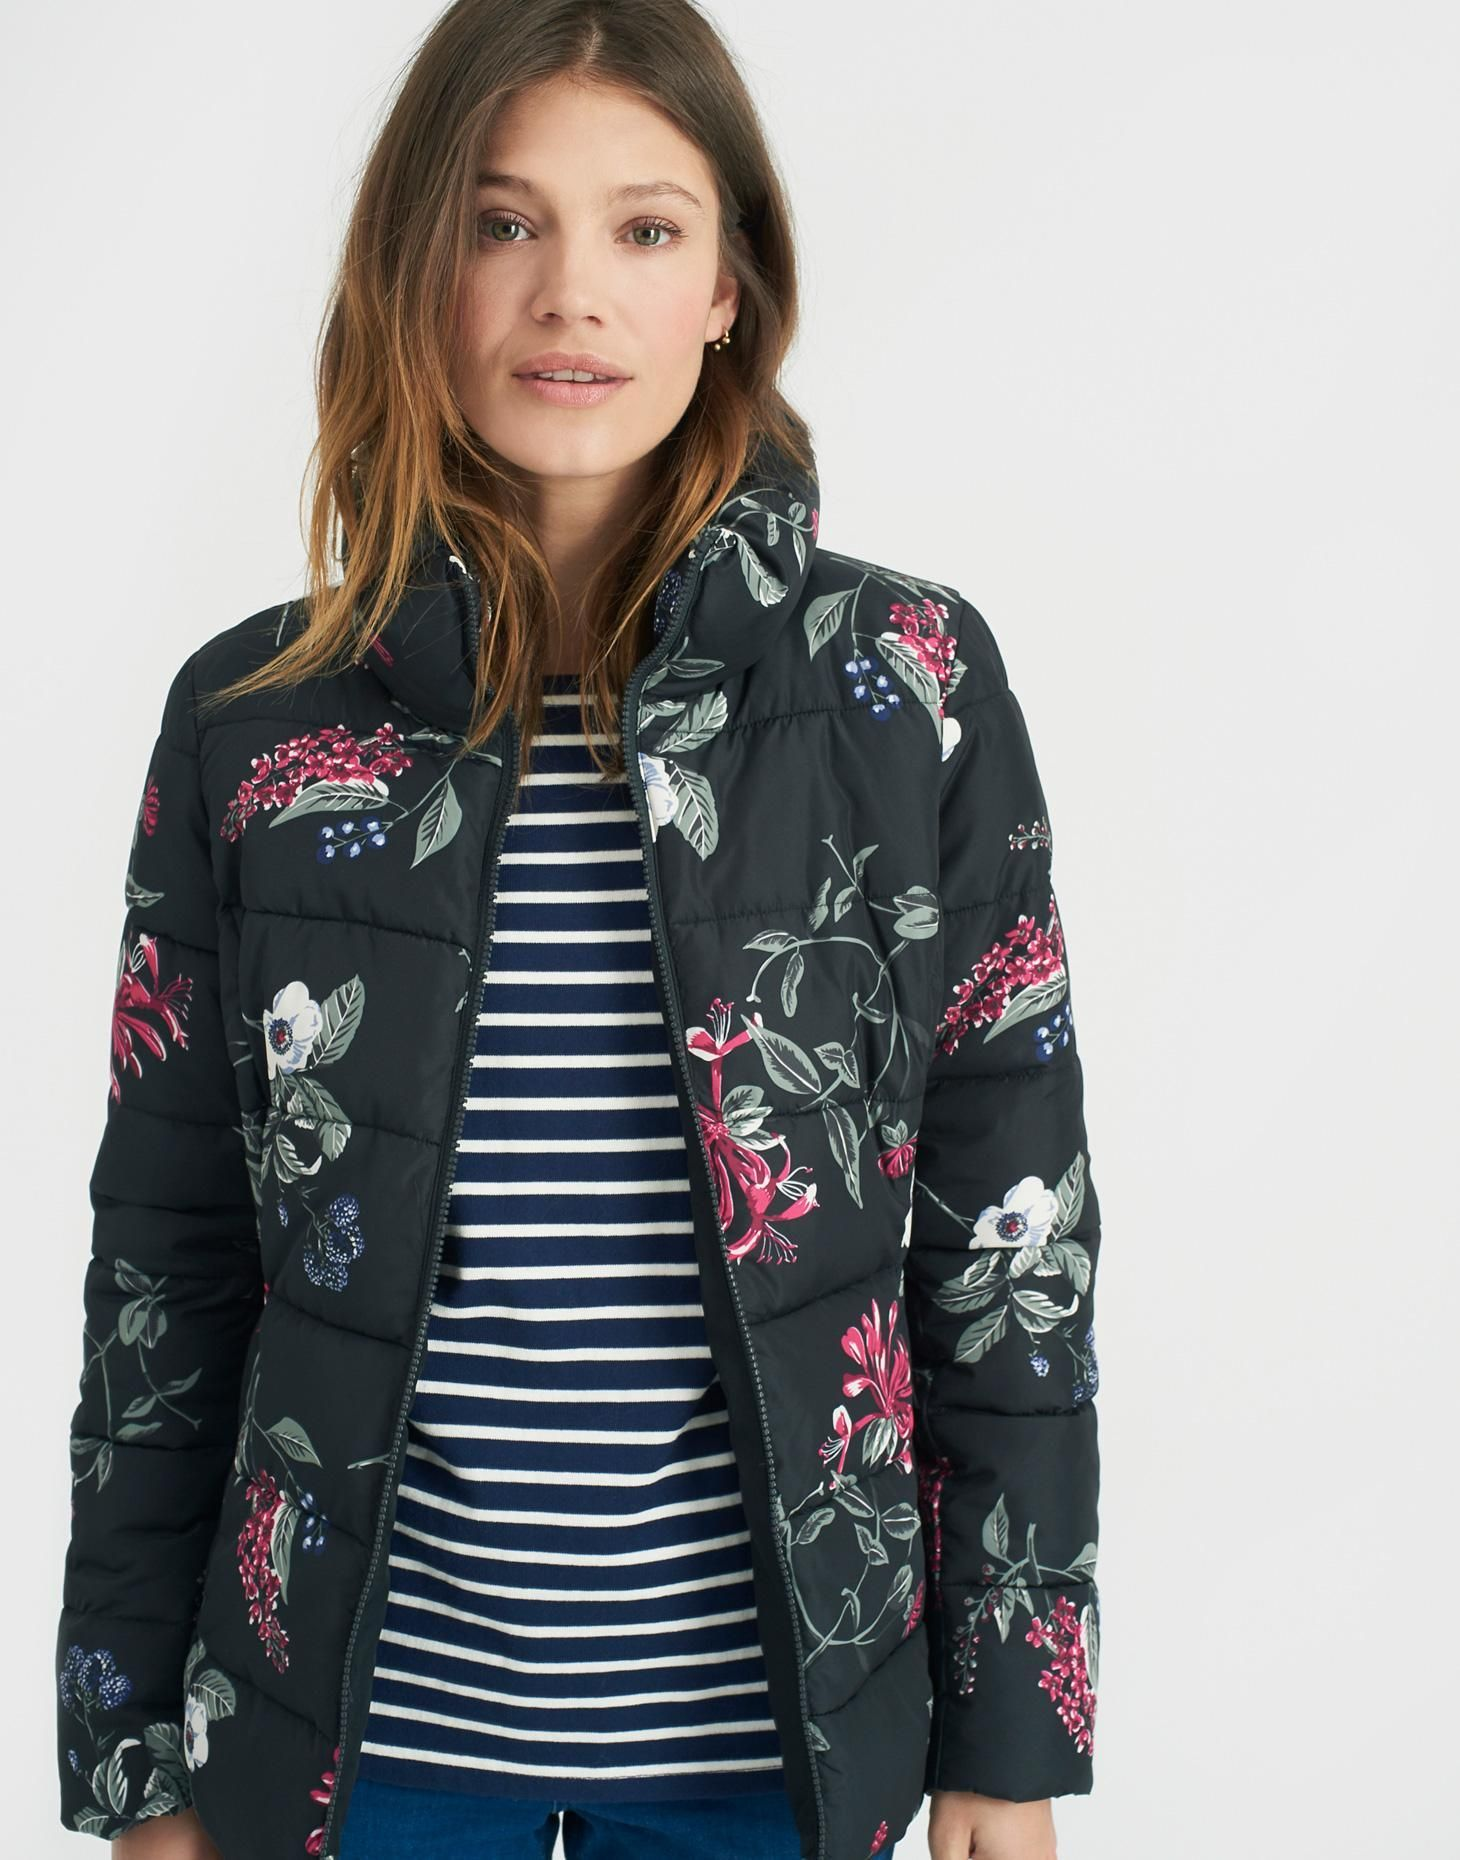 Florian Black Hedgerow Padded Jacket | Joules US | ##momBLOG ... : joules quilted jacket sale - Adamdwight.com